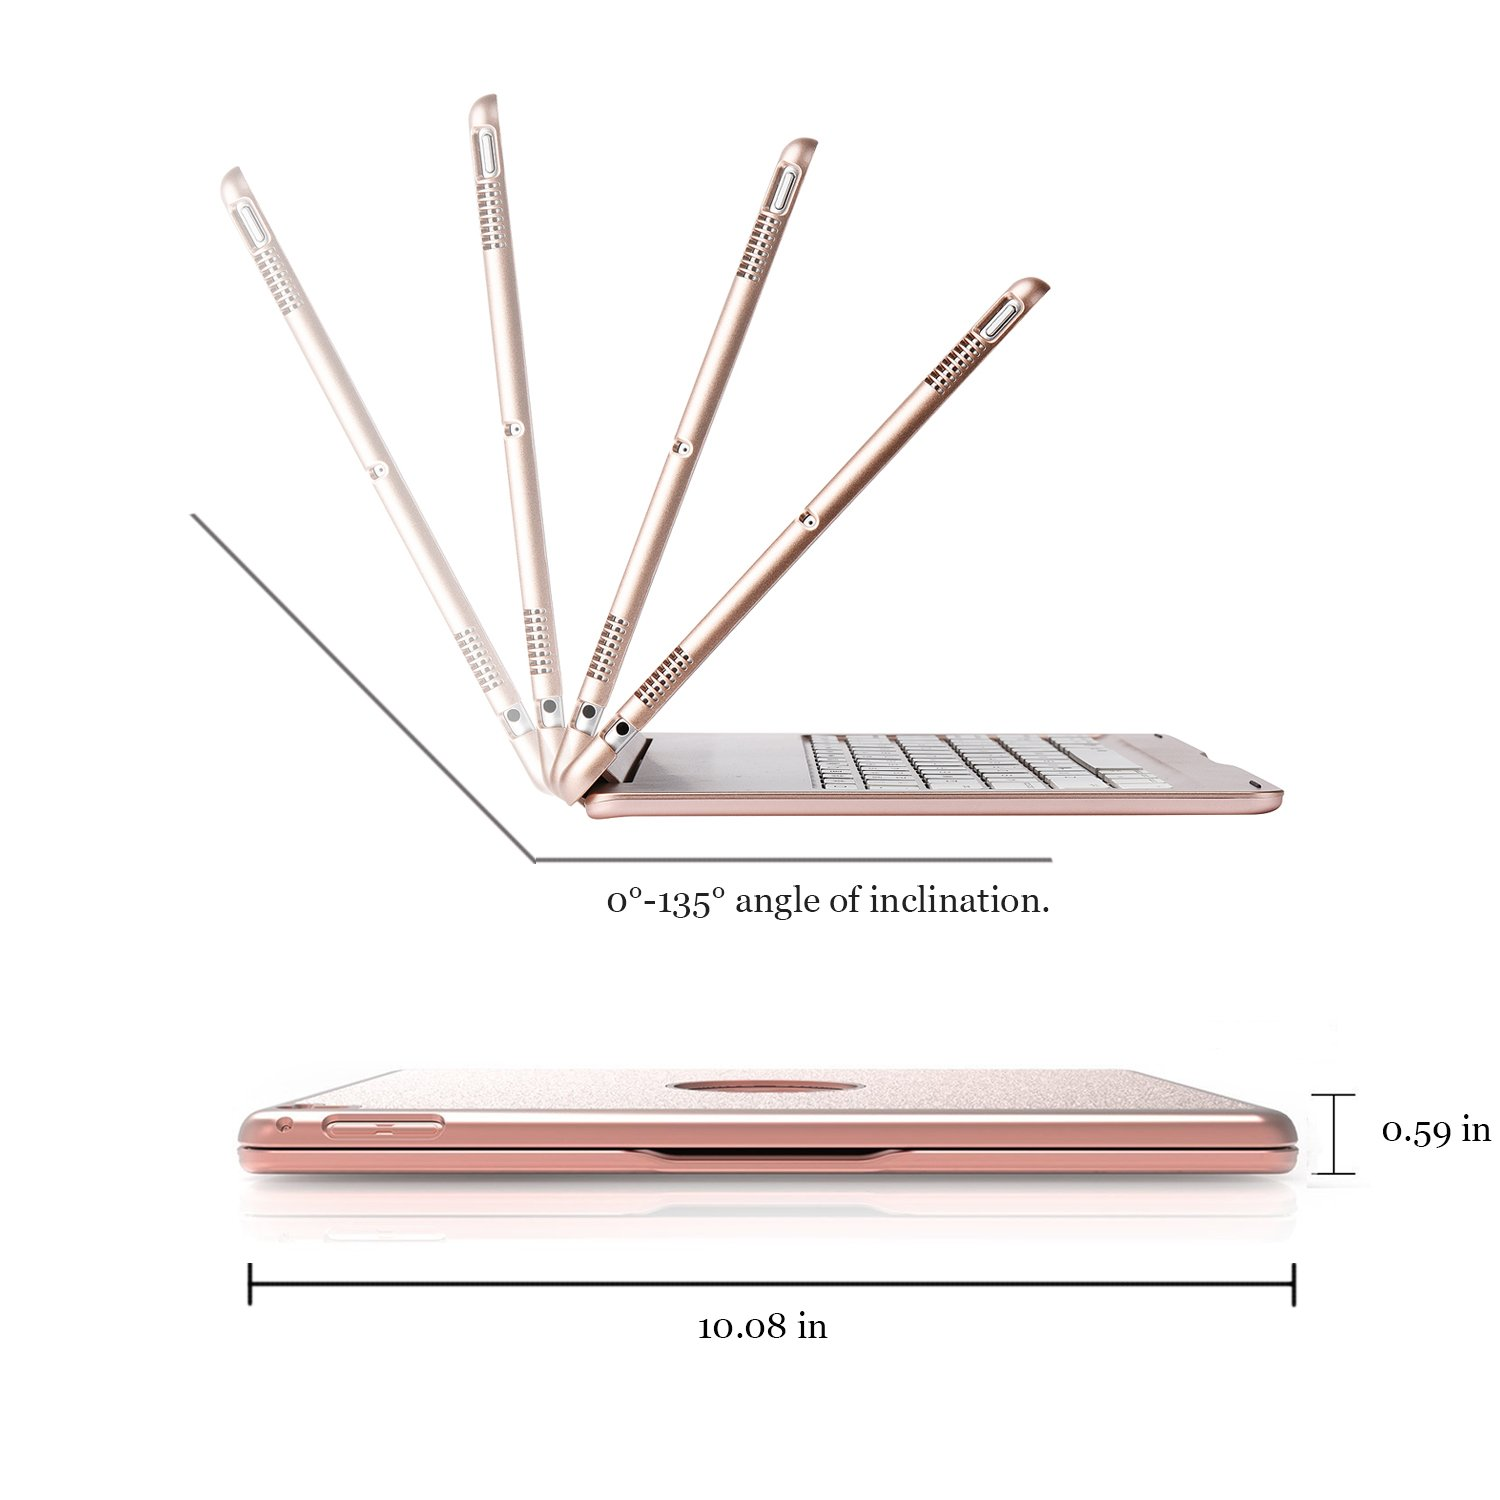 ONHI Bluetooth Wireless Keyboard Case for iPad Pro 10.5 Keyboard Case Aluminum Shell Smart Folio Case with 7 Colors Back-lit, Auto Sleep/Wake,Silent Typing (A1701/A1709)(Rose Gold) by ONHI (Image #4)